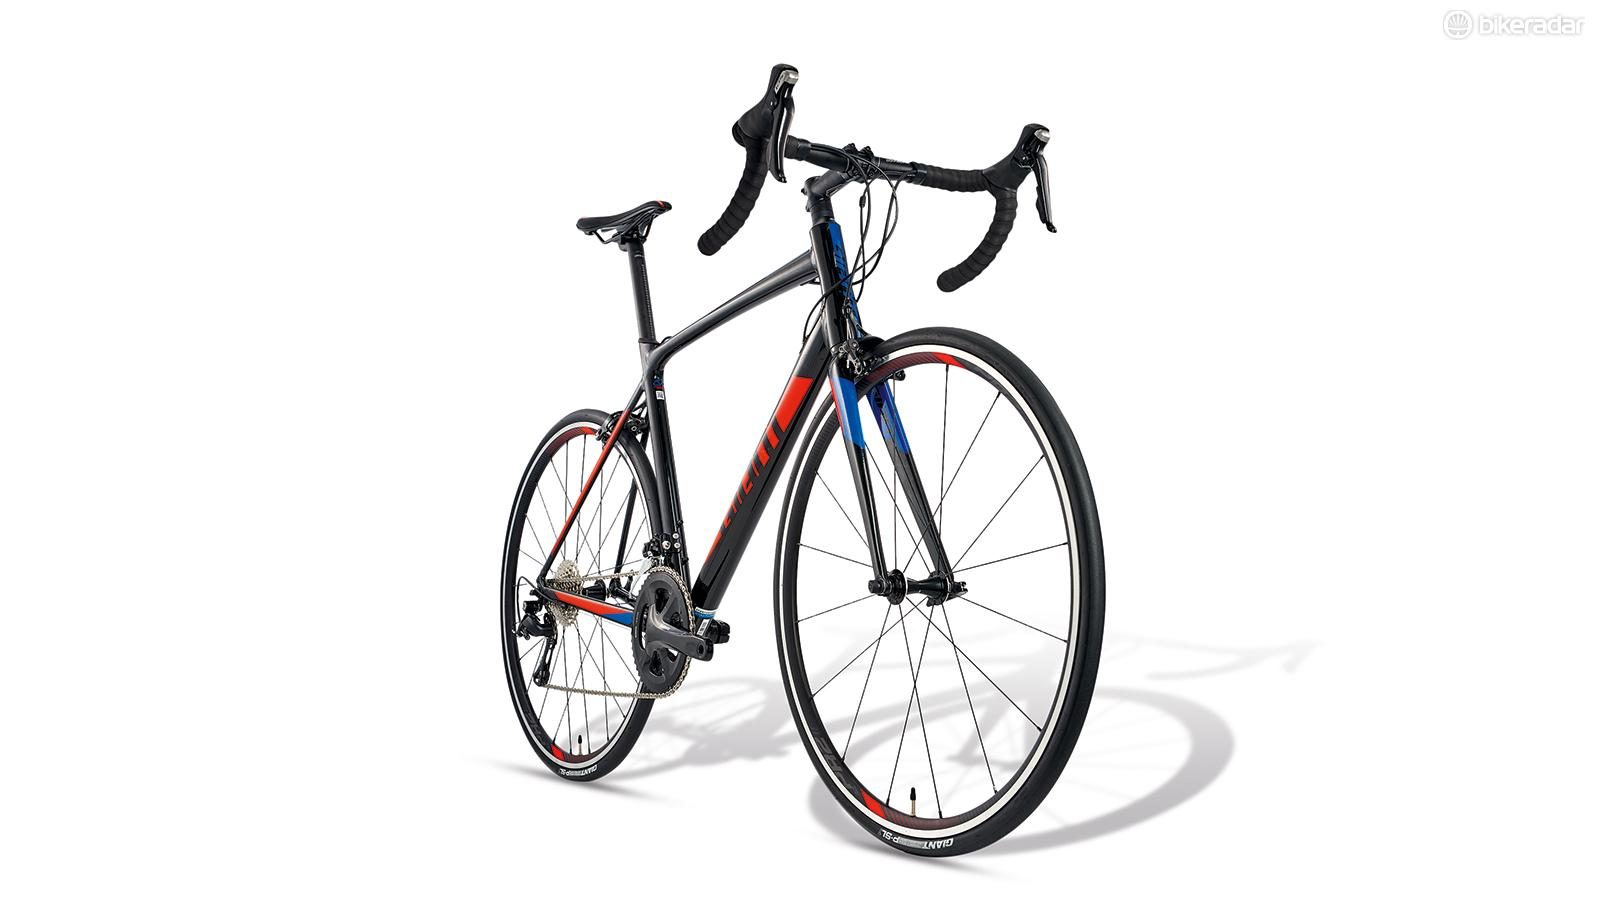 Giant Contend Sl 1 Review